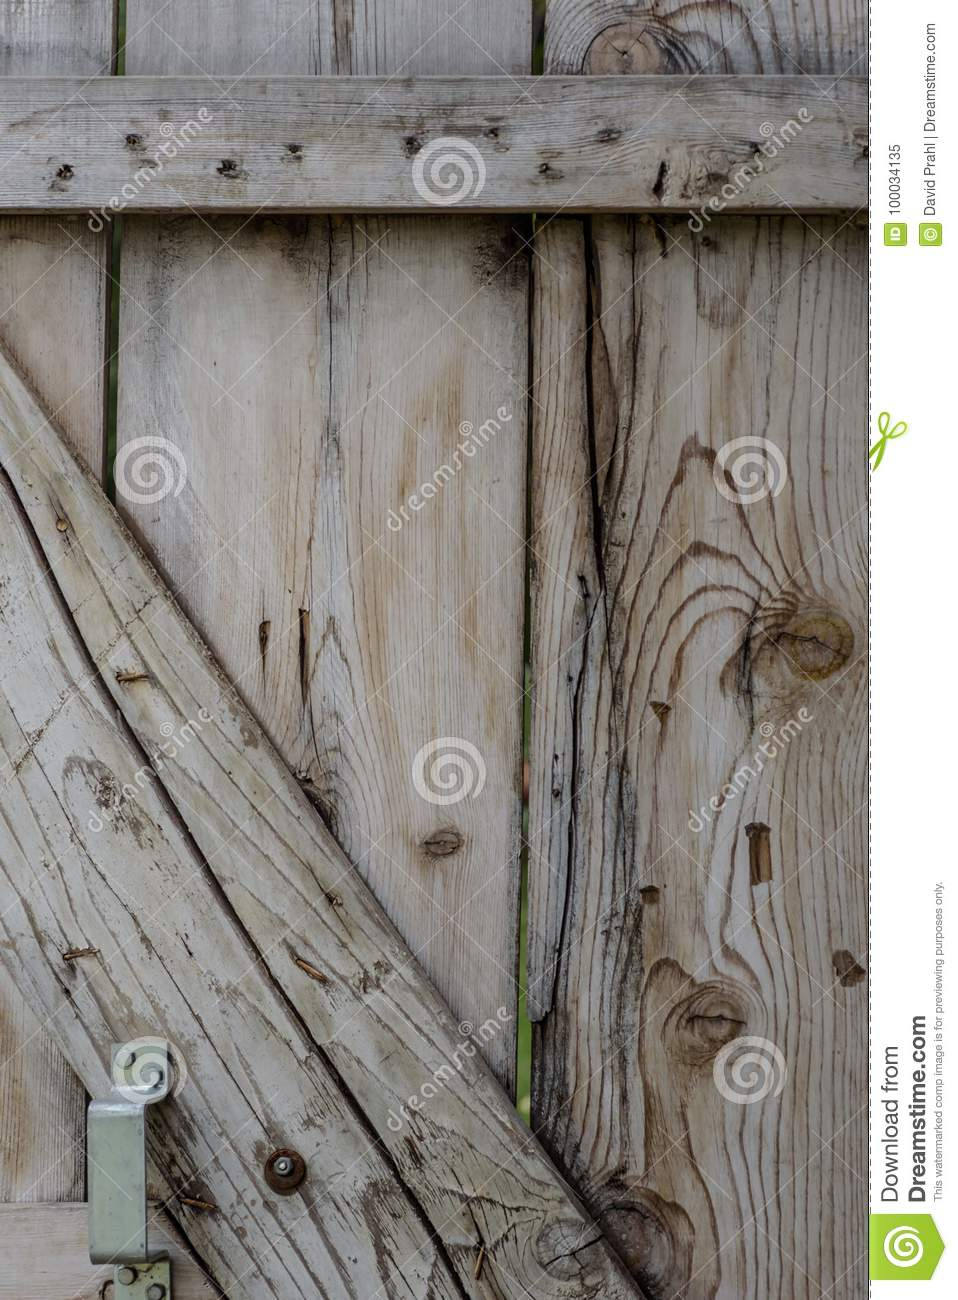 Old Barn Door Backdrop Stock Image Image Of Distressed 100034135